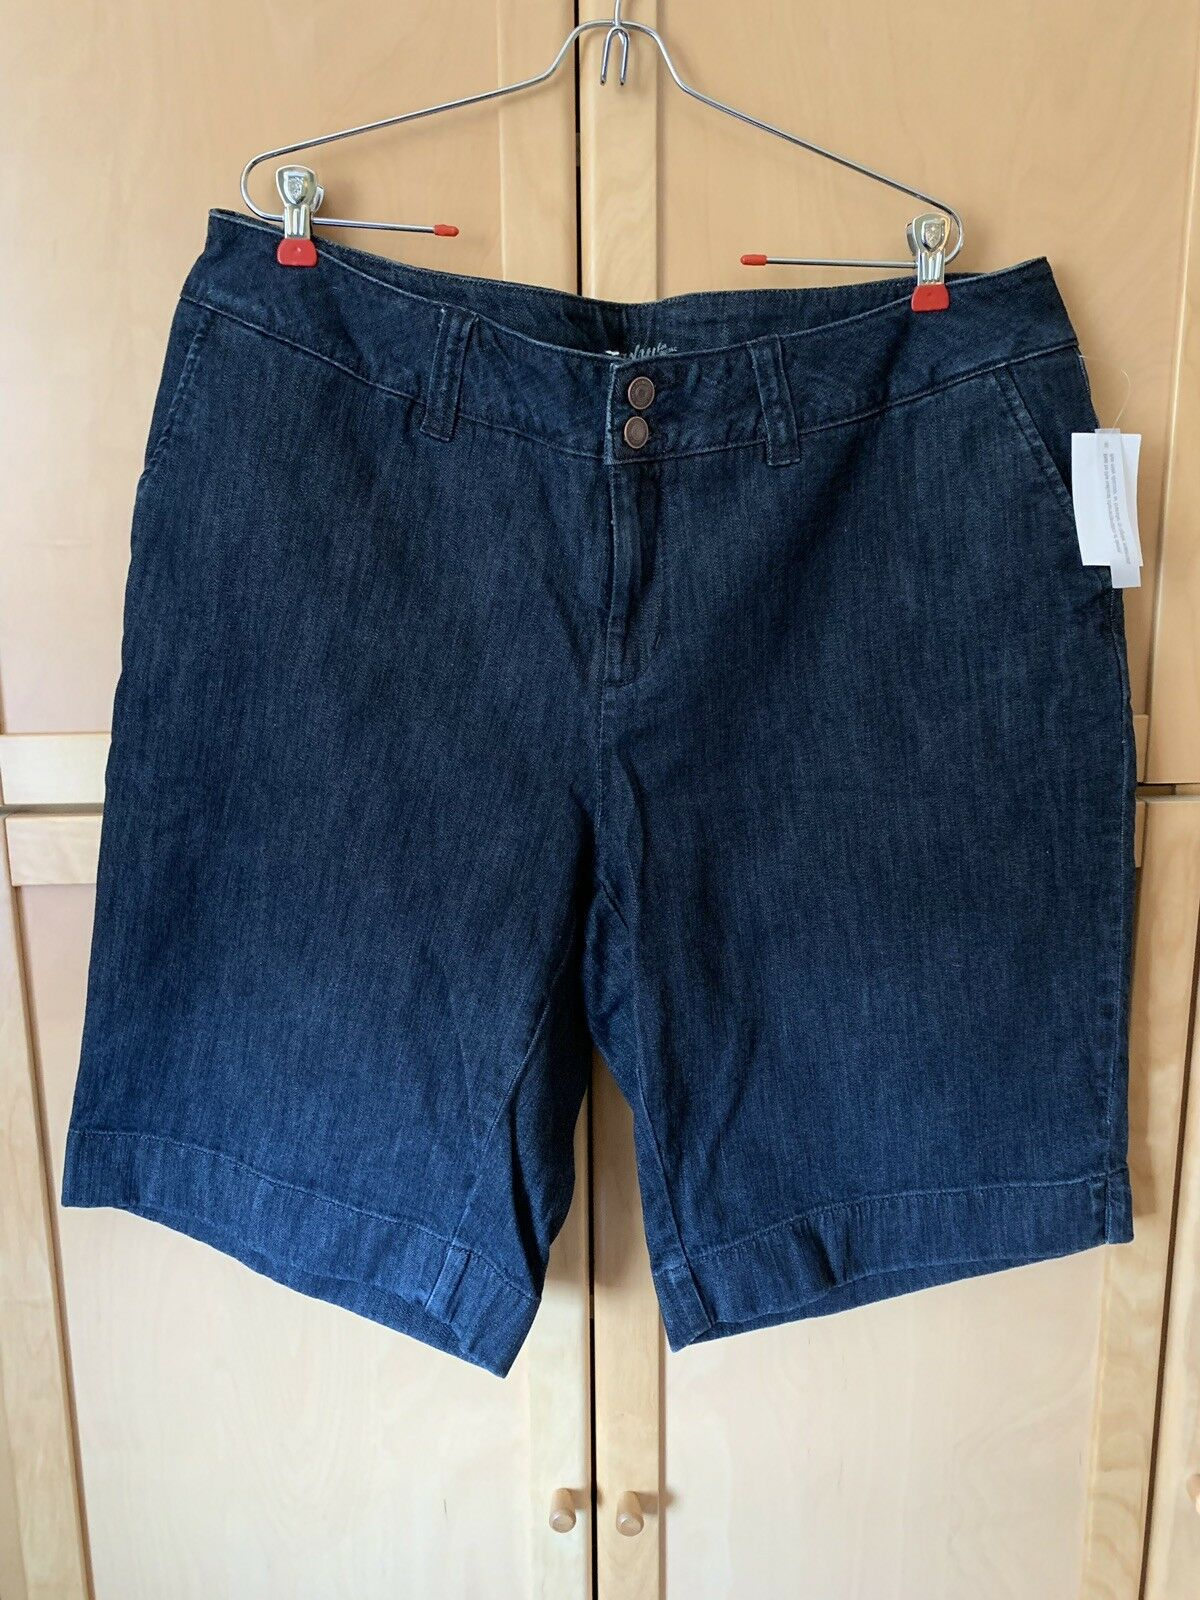 3 Pair Of Shorts From Nordstrom Caslon Size 18